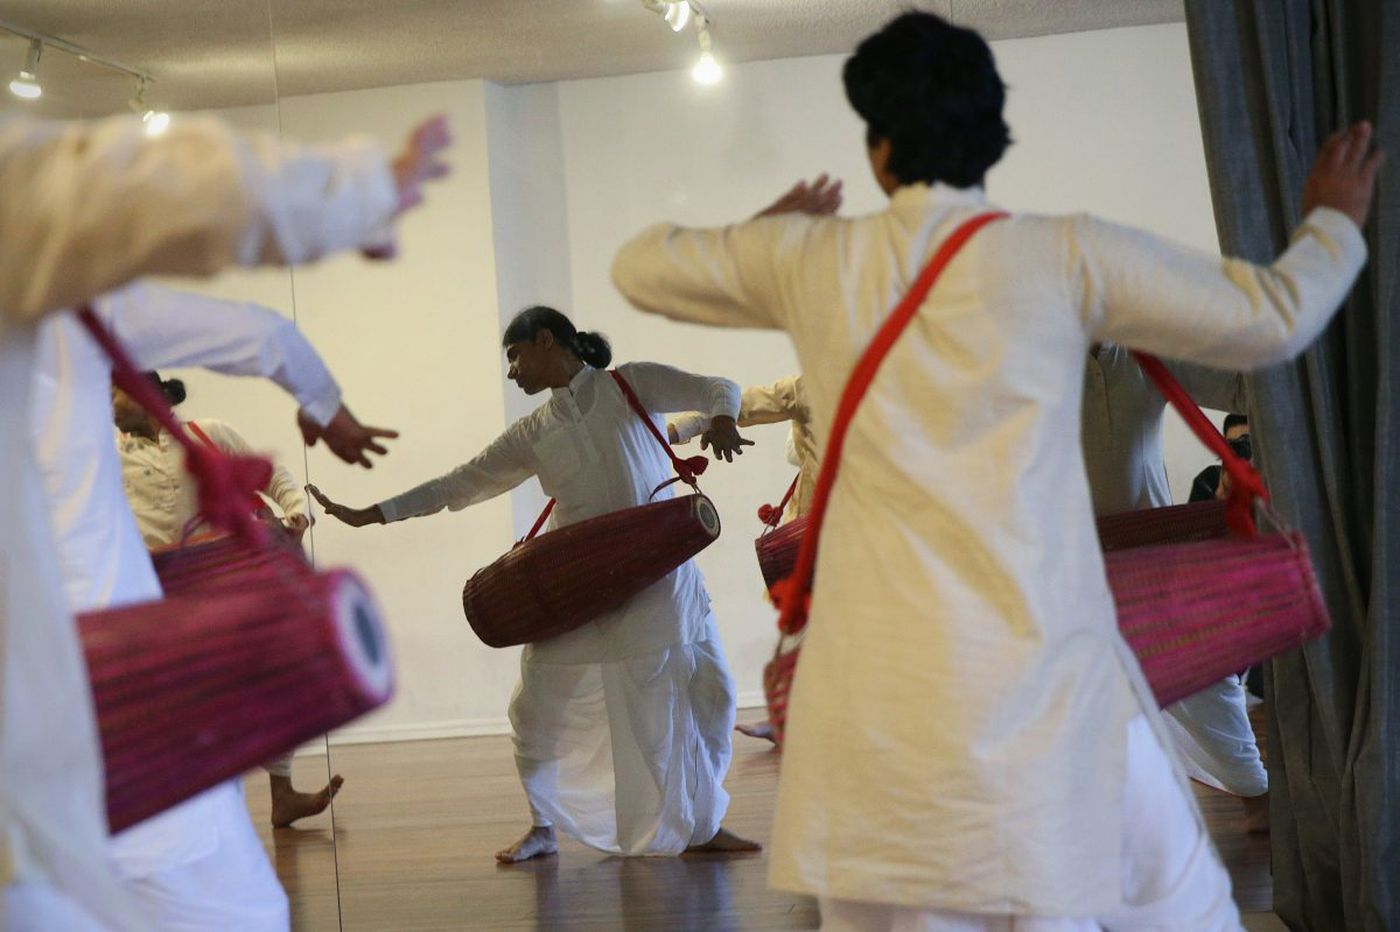 India's 'dancing monks' visit Drexel Saturday on first-ever U.S. tour